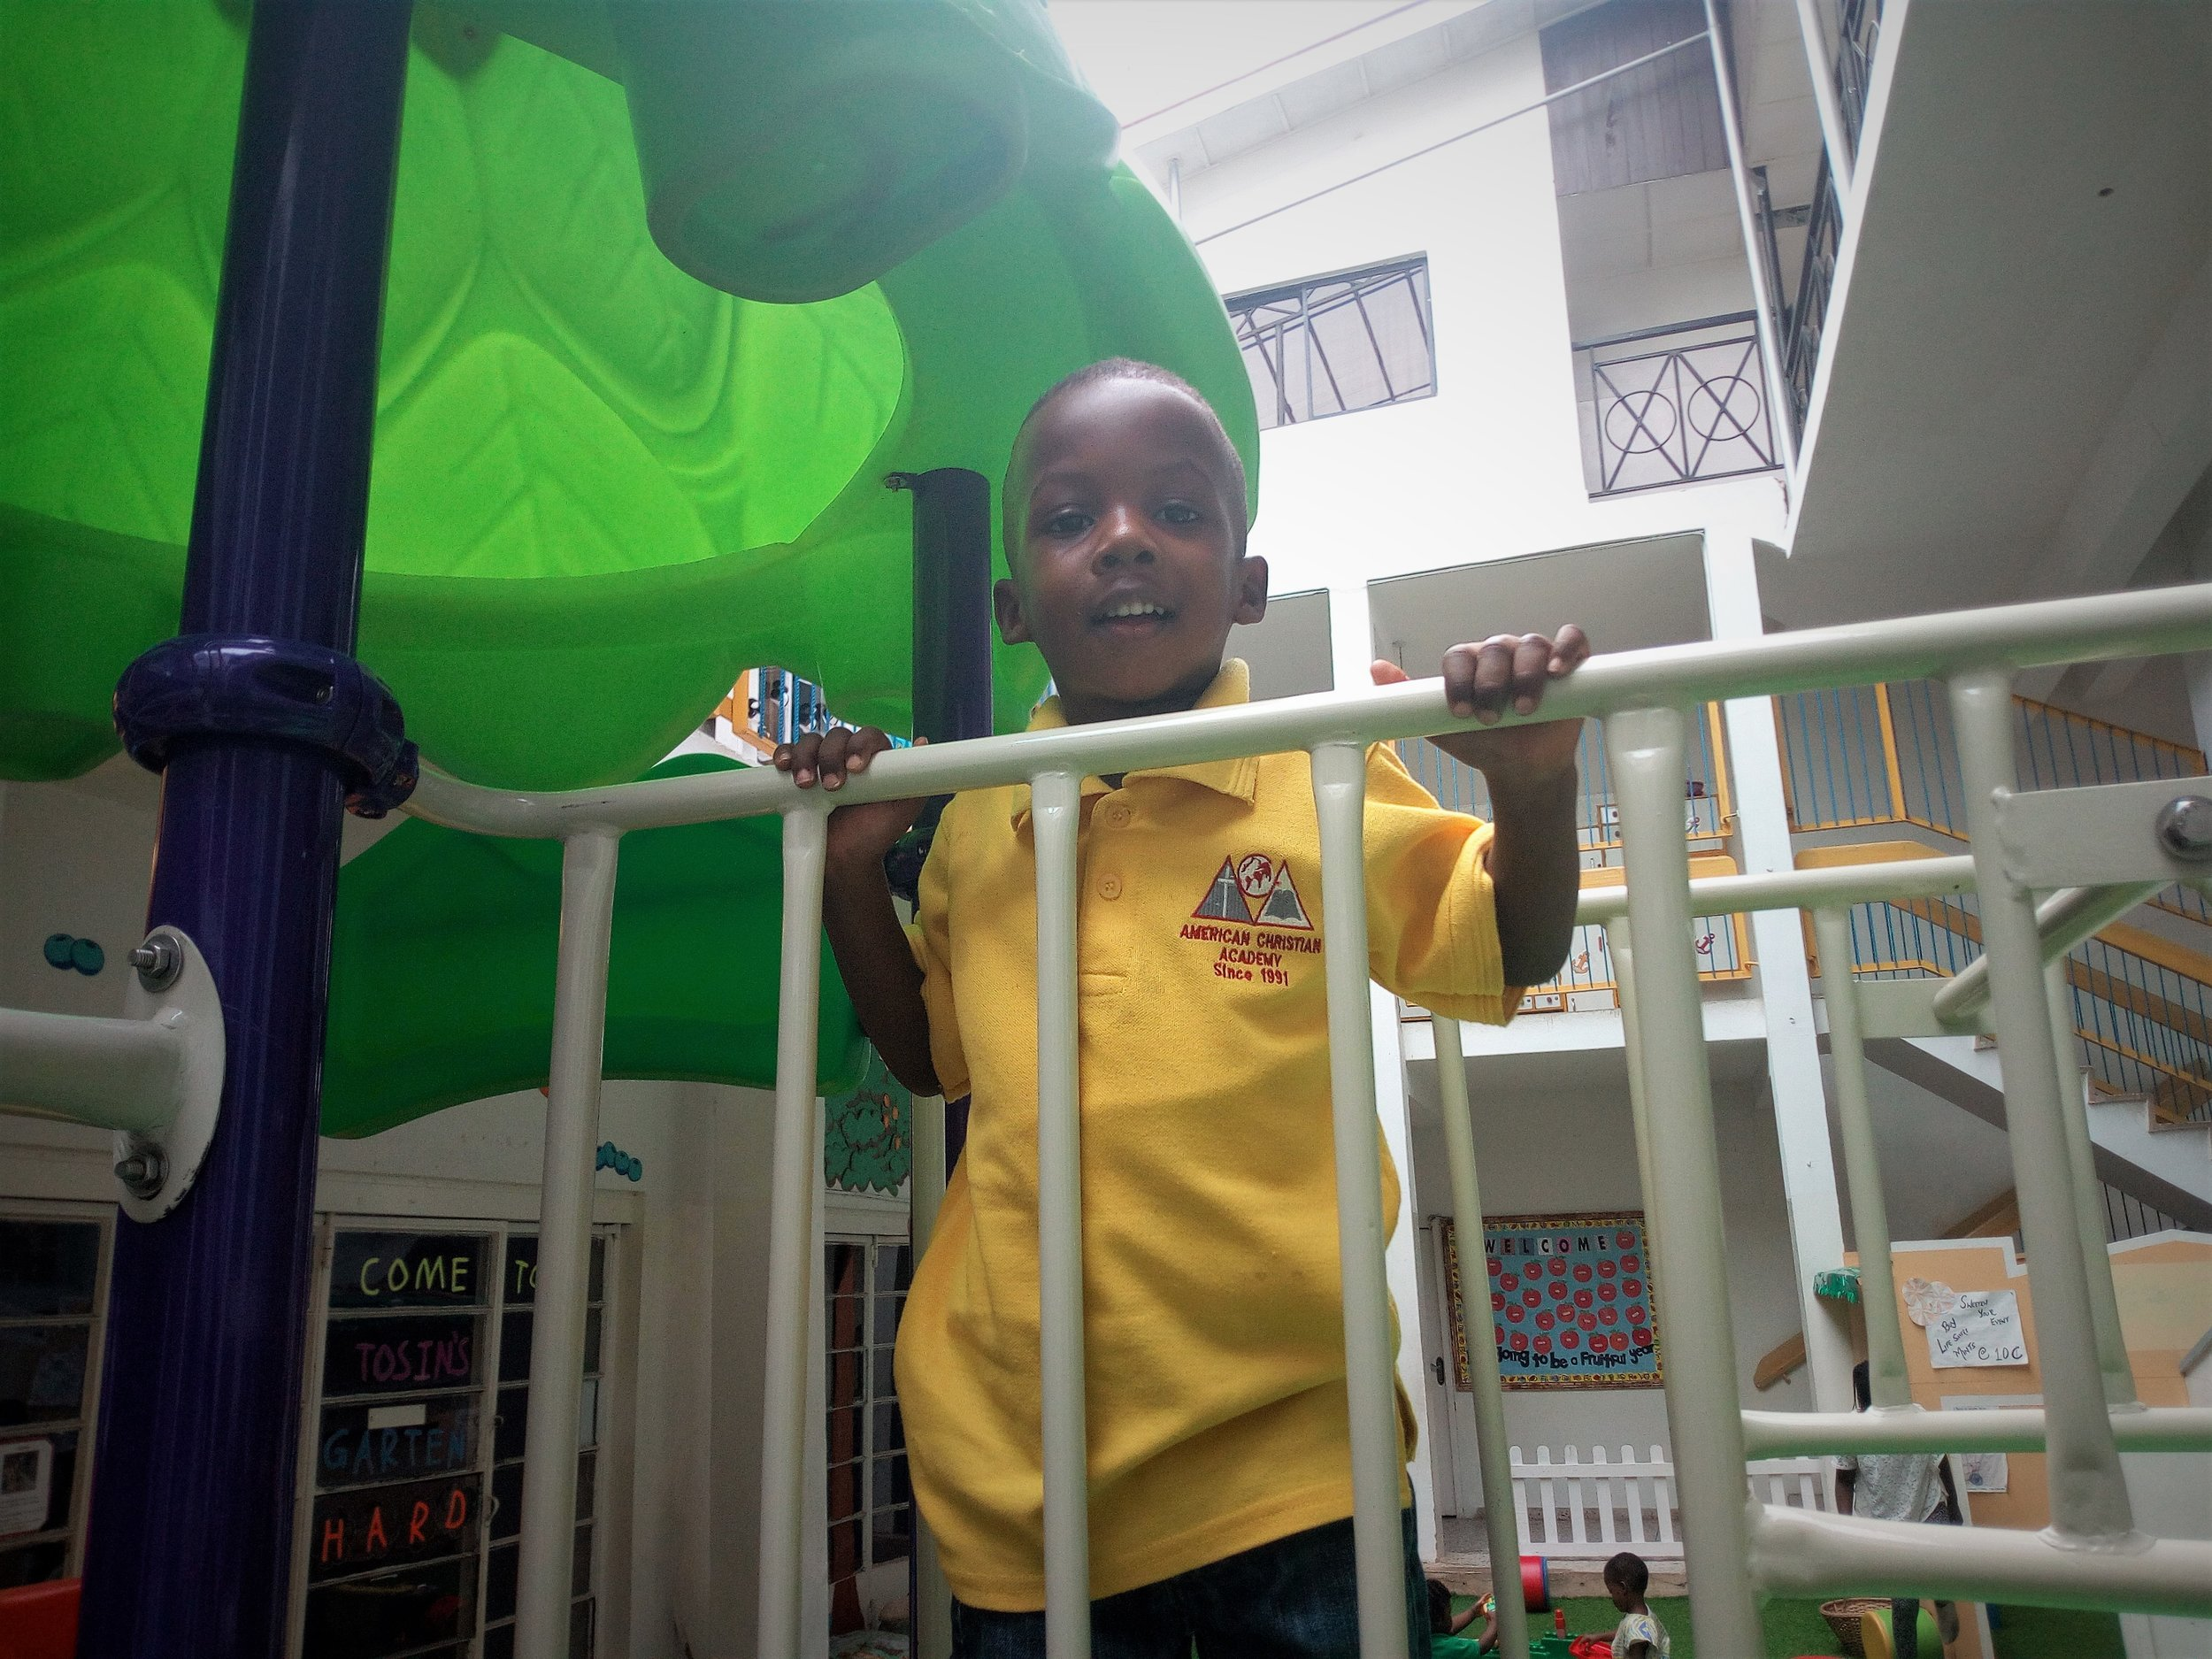 Preschoolers love the jungle gym!